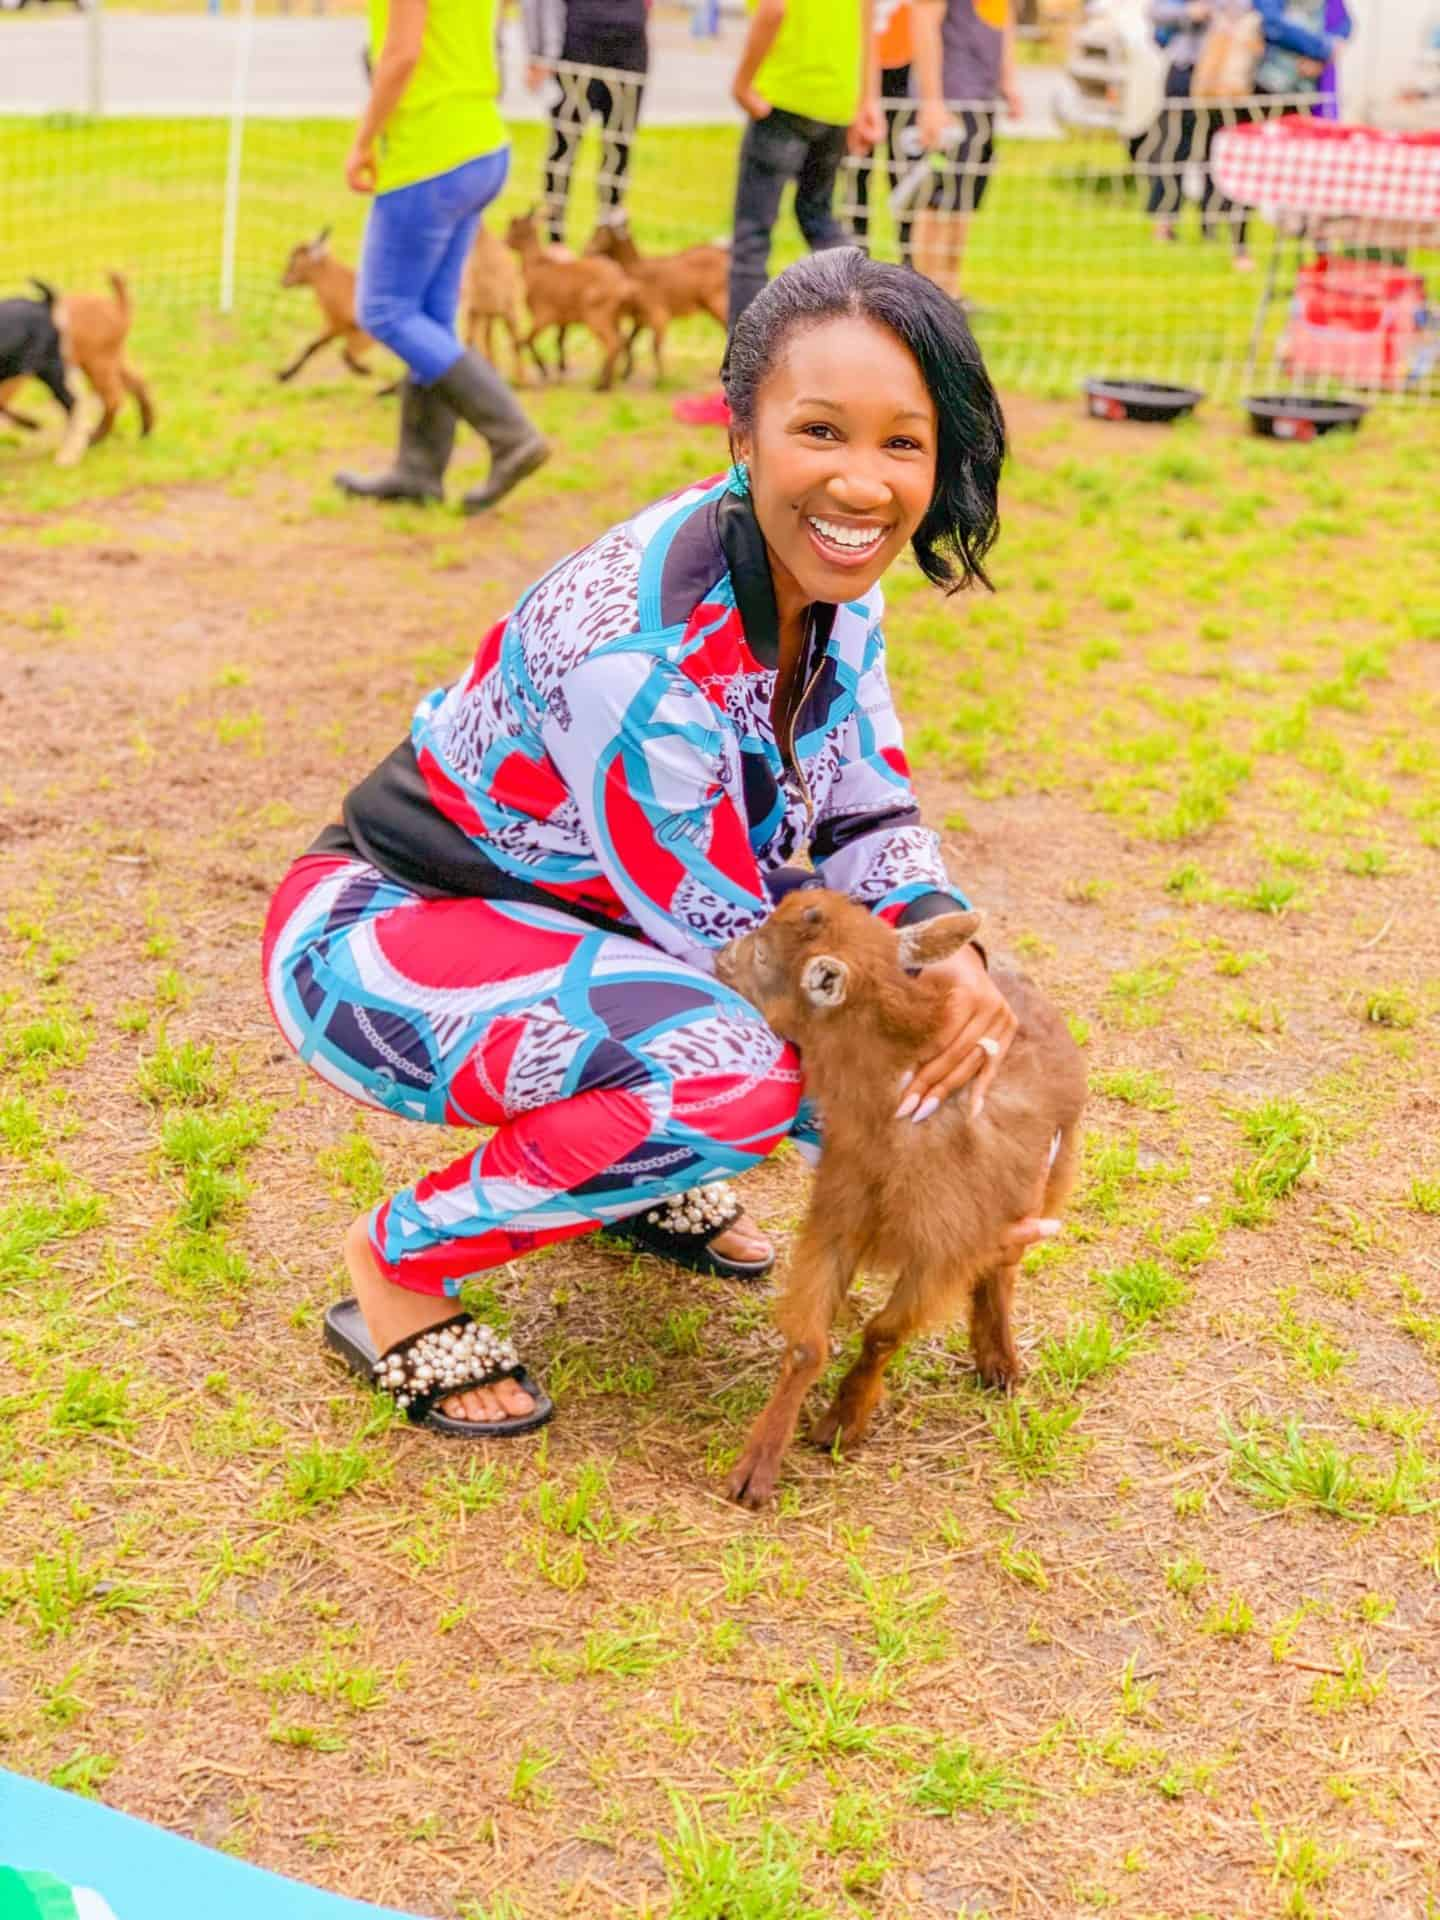 Goat yoga exercise after hysterectomy recovery